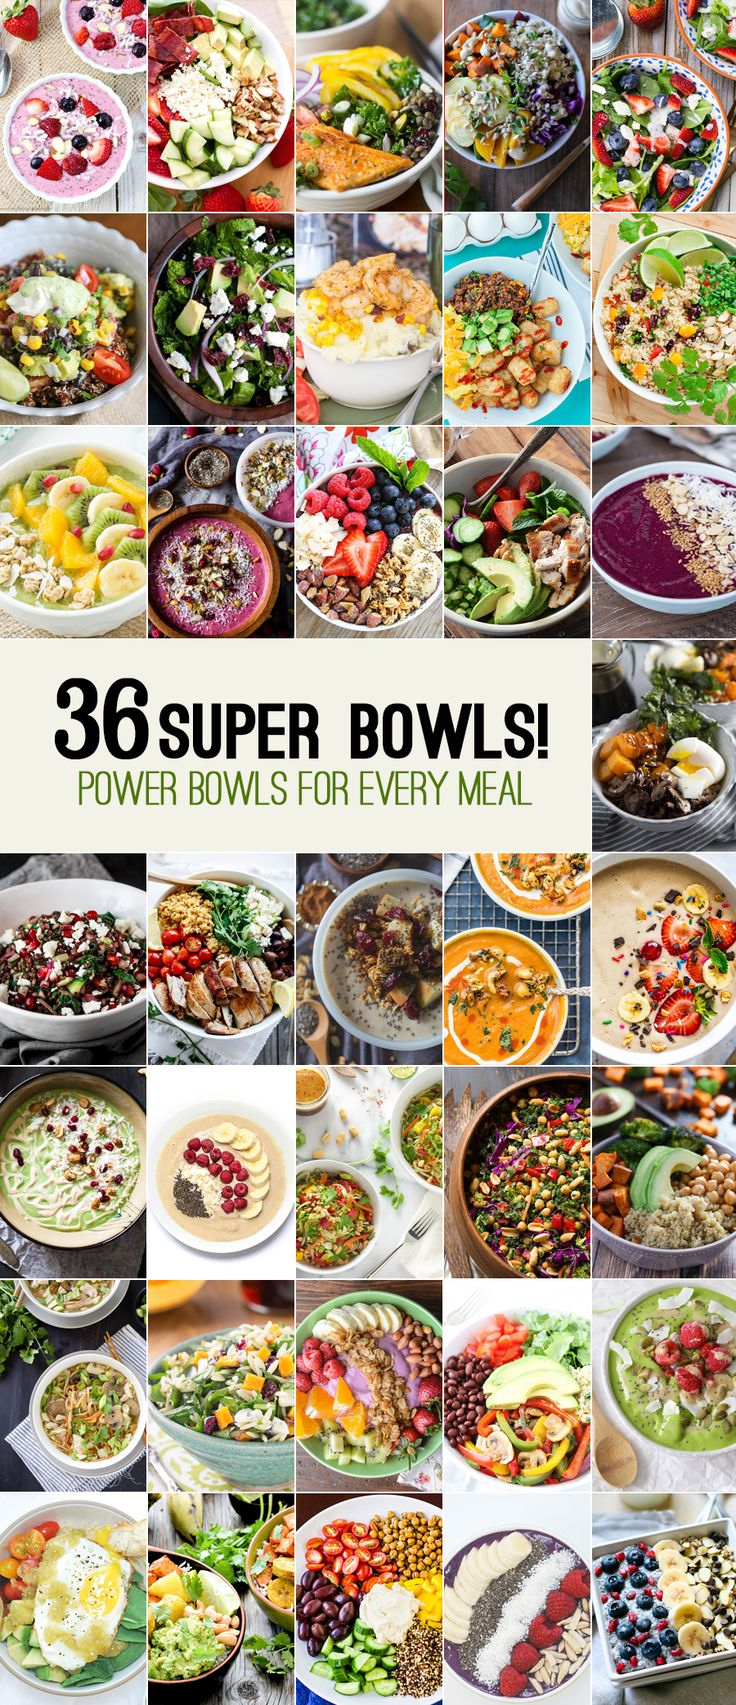 Here's a collection of 36 super bowls (more like power bowls) to get you pumped…